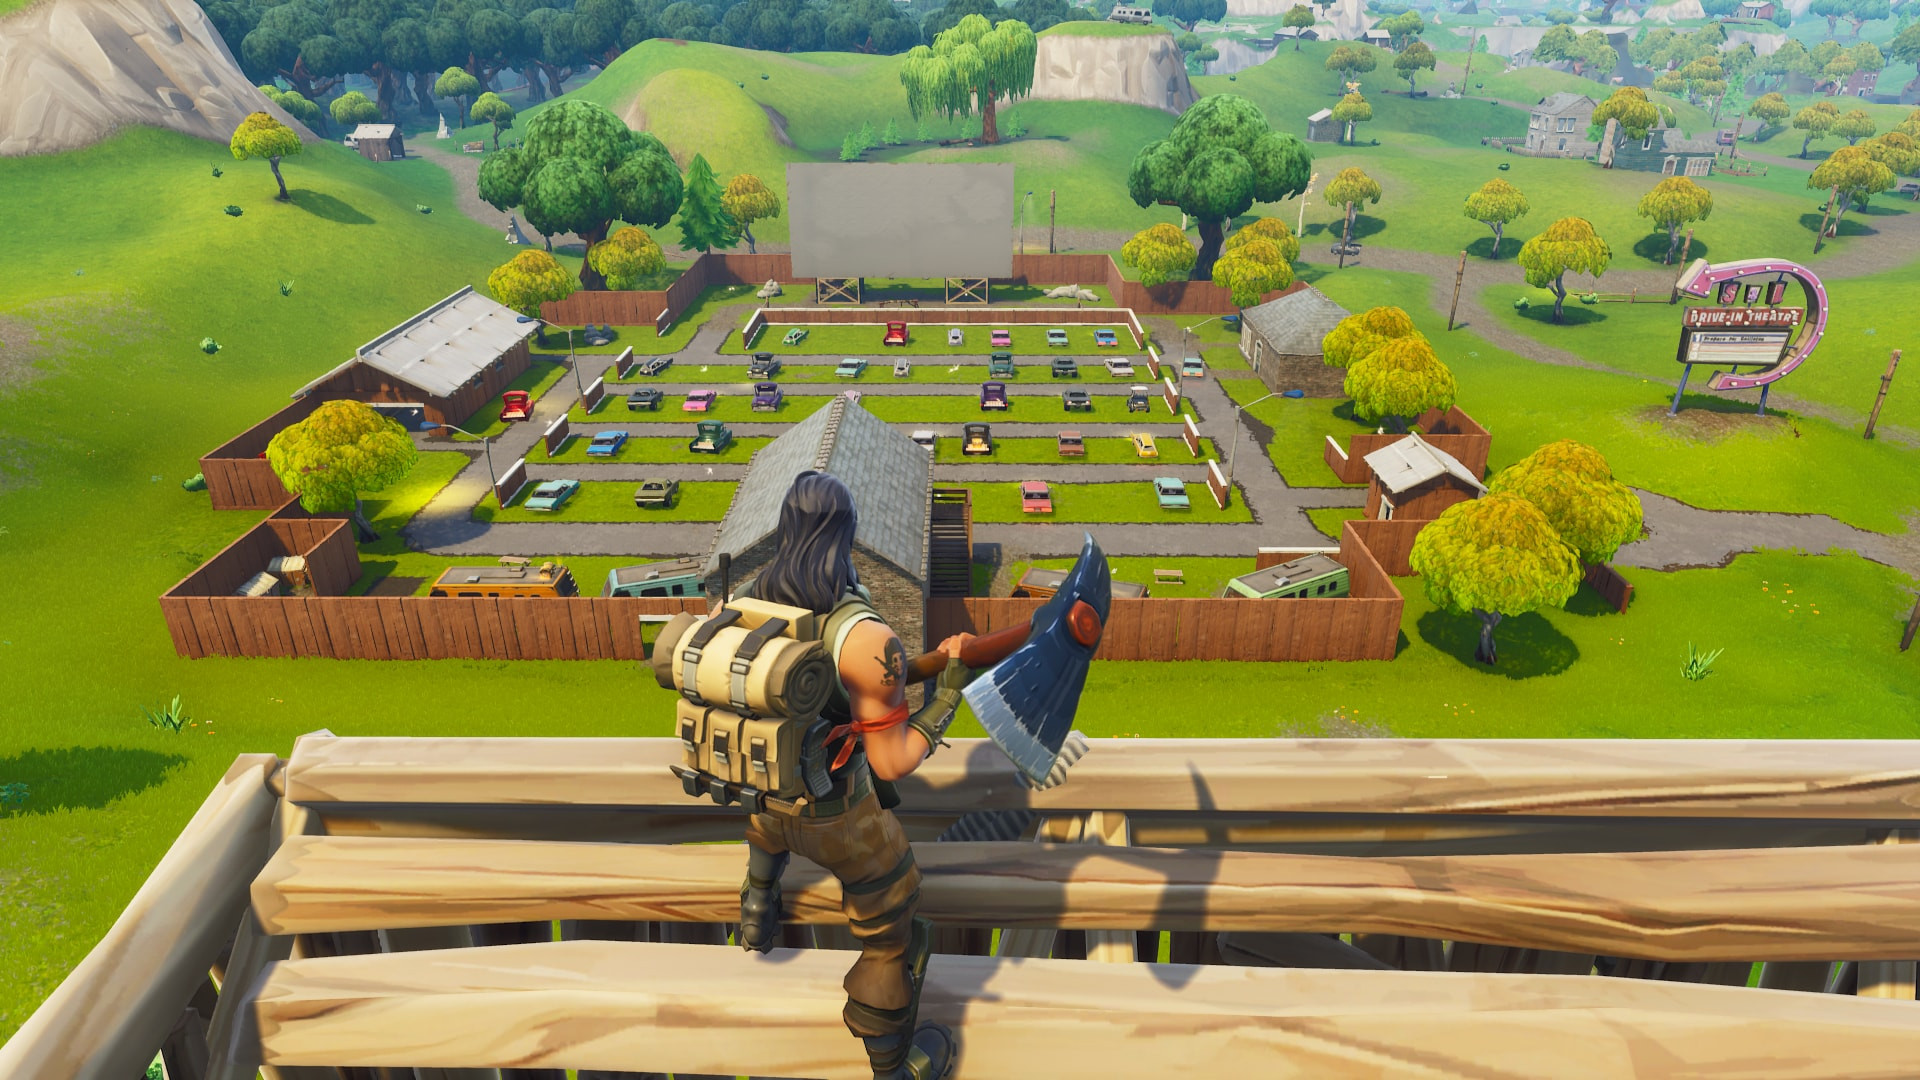 Risky Reels from top view | Fortnite - zilliongamer your game guide